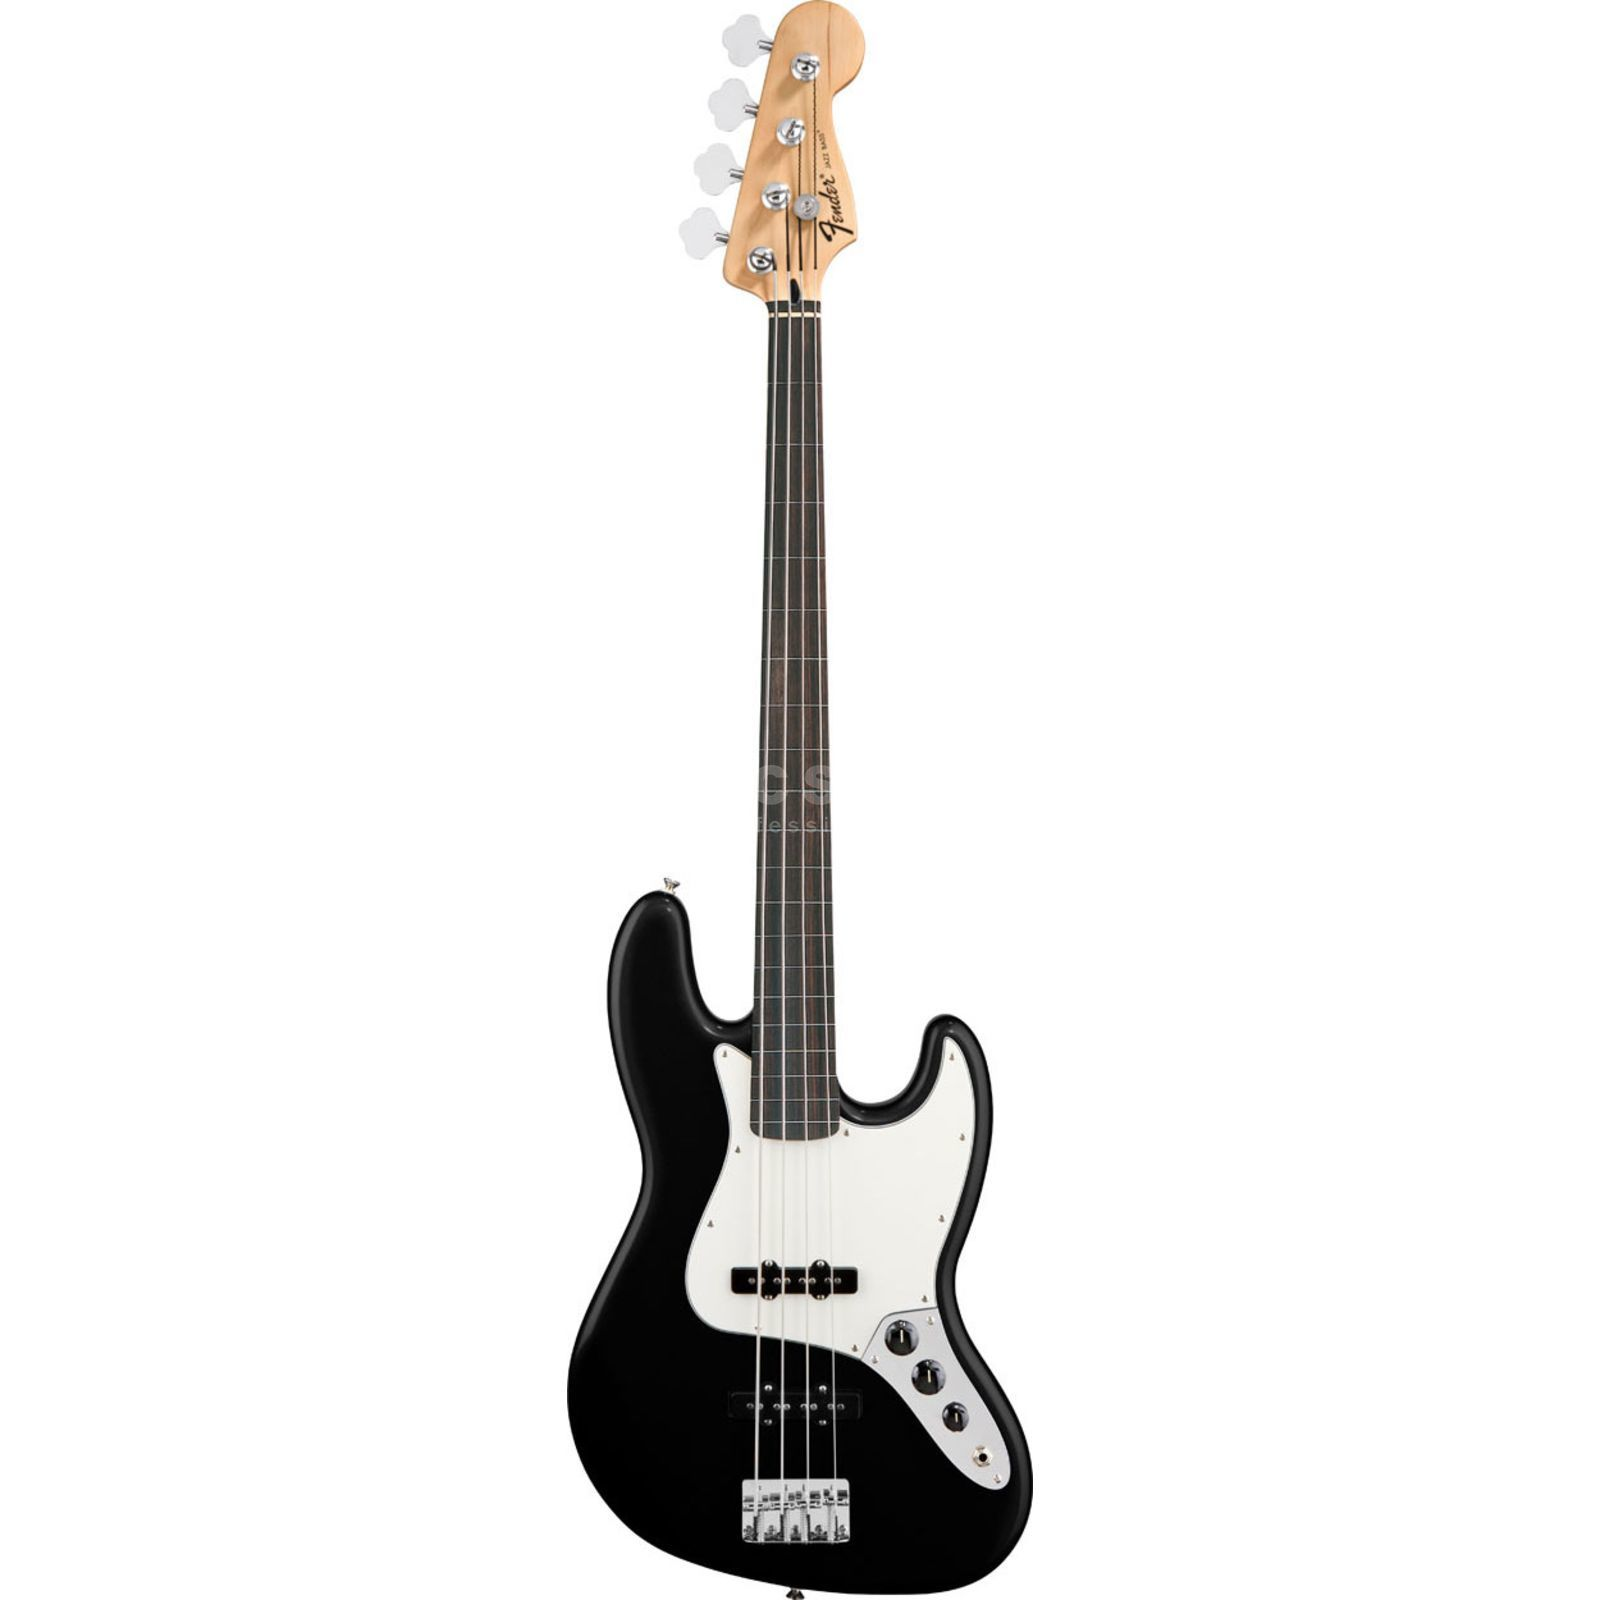 Fender Standard Jazz Bass Fretless RW Black Product Image